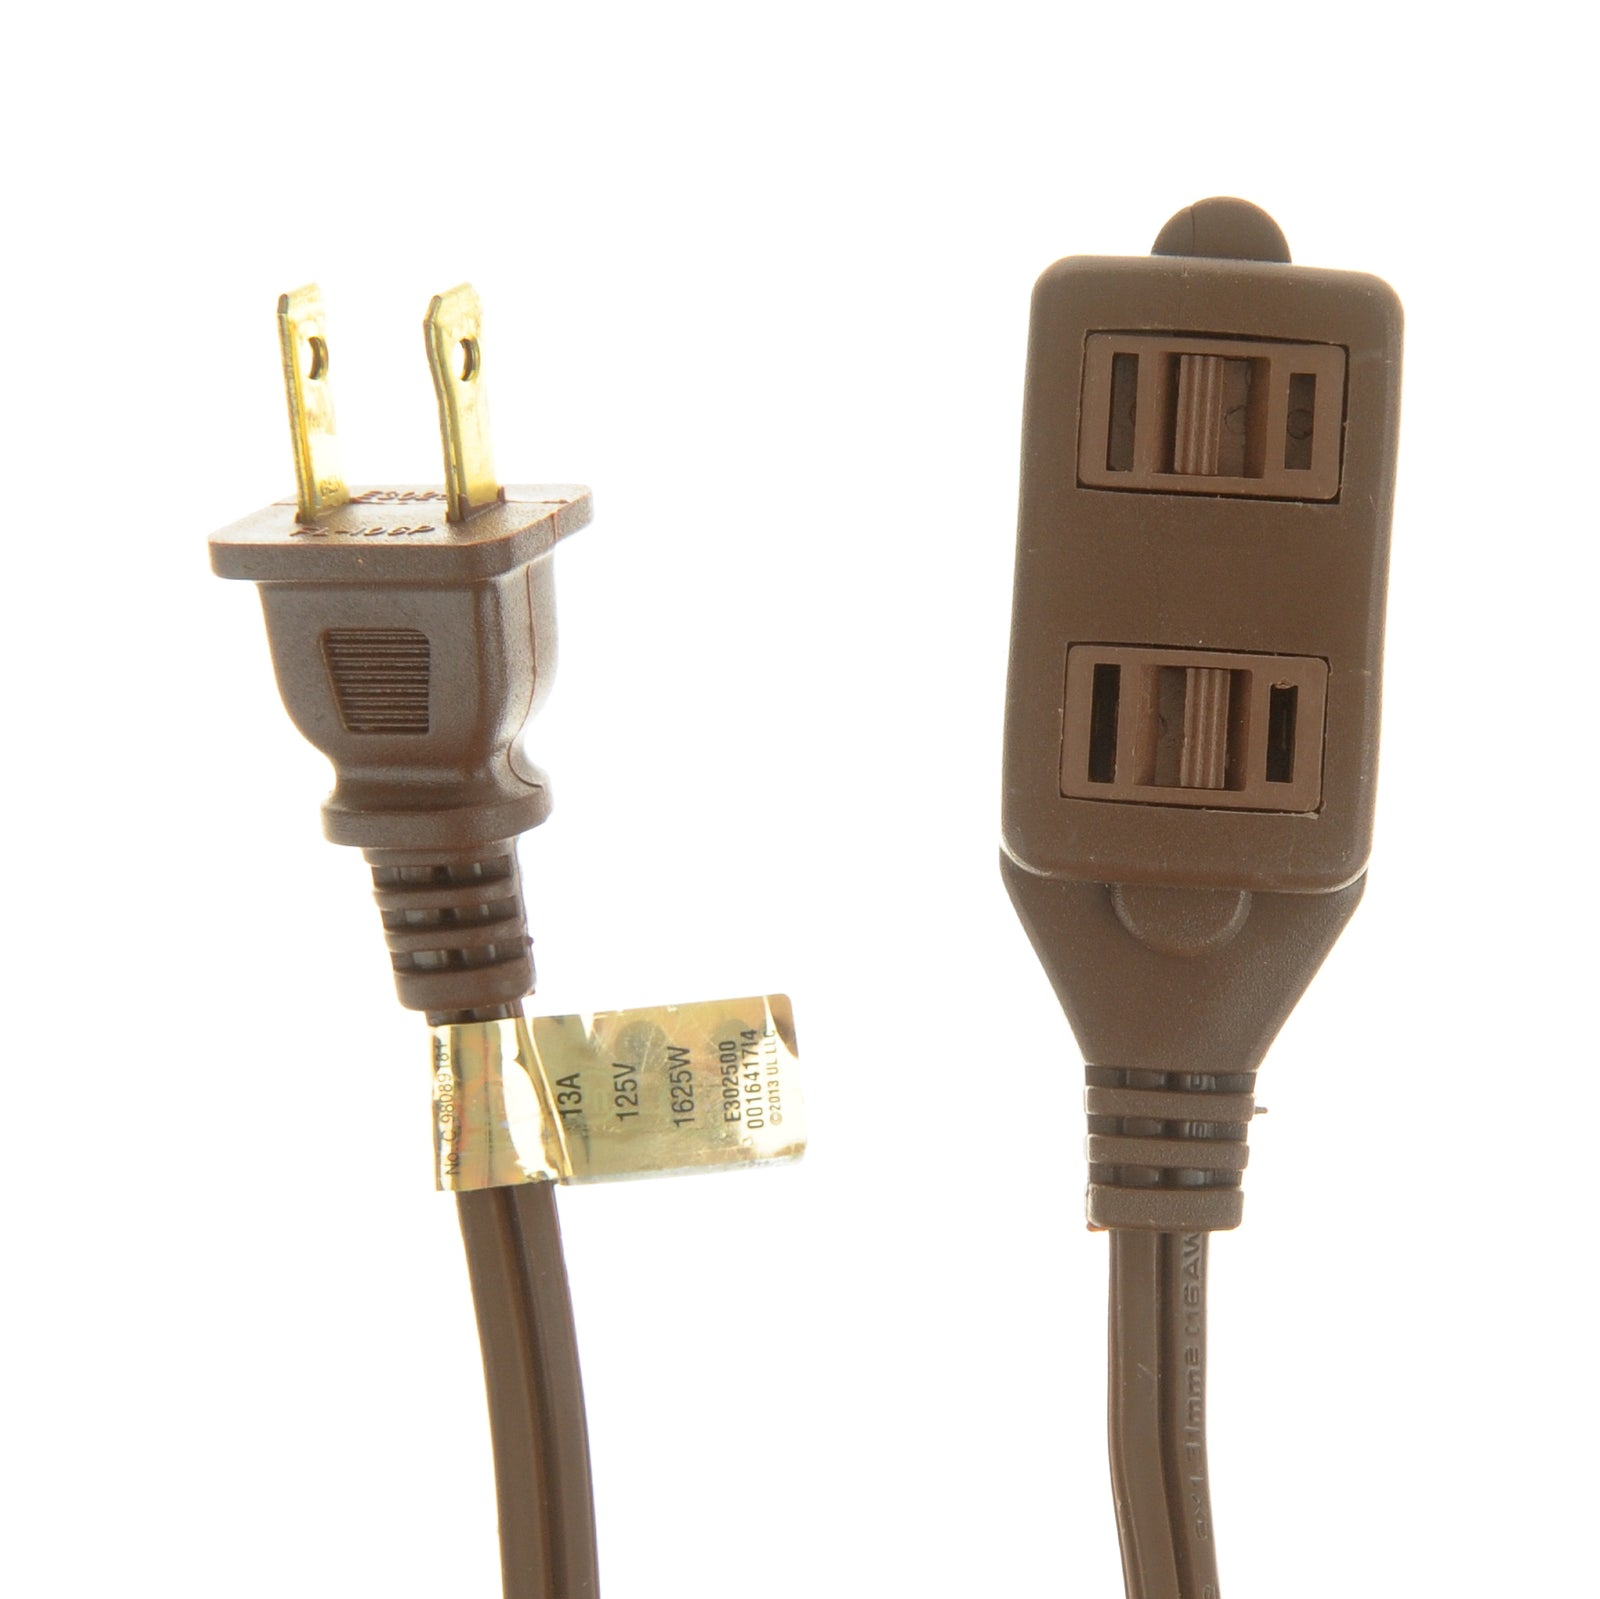 Viasonic Indoor Extension Cord - 2-Pack - 16 Gauge - 2 Prong - 3-Outlet - UL-Listed